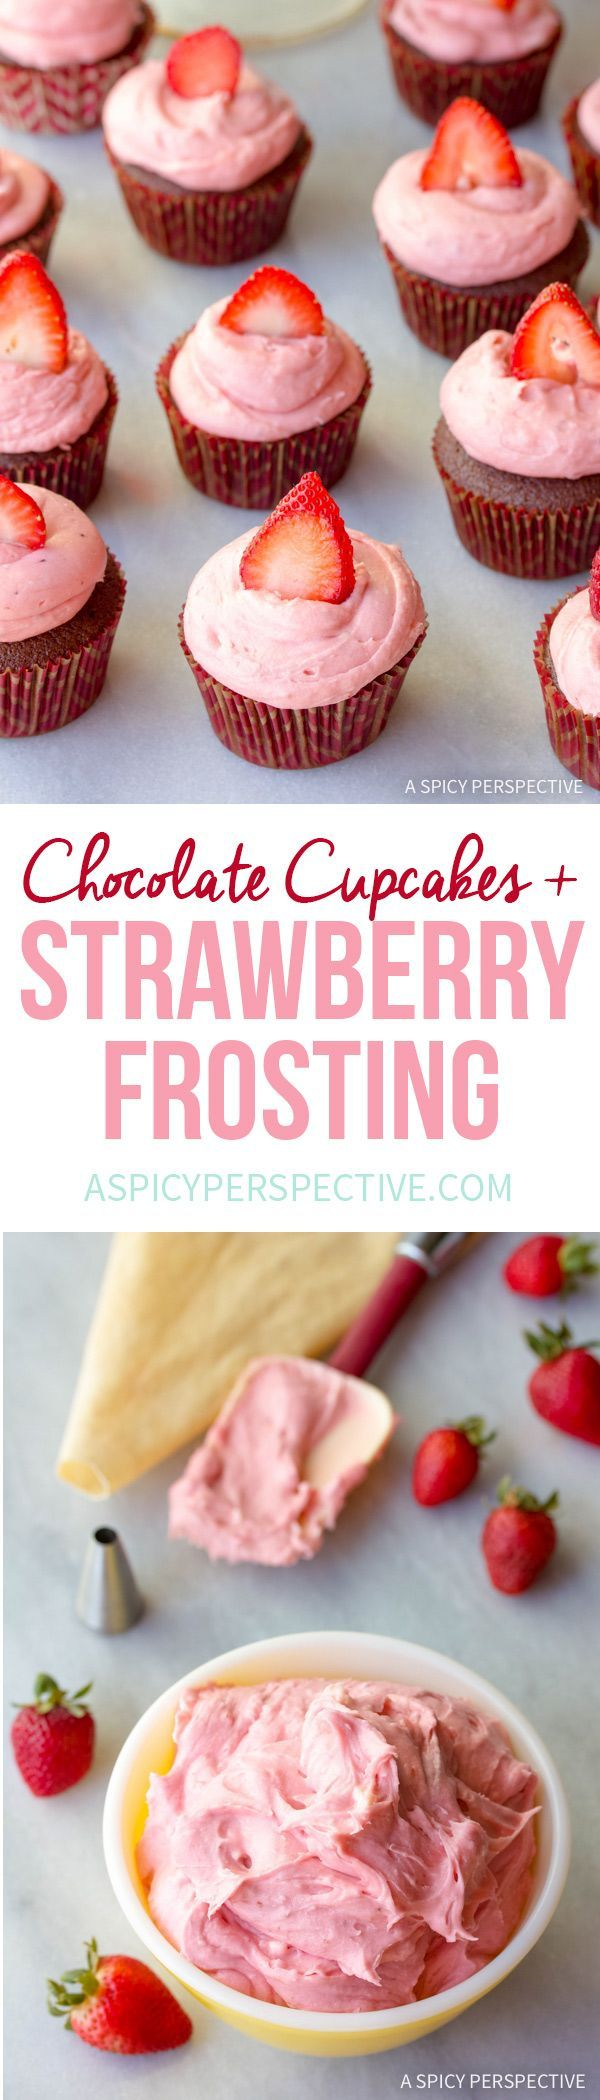 Ultra-Moist Chocolate Buttermilk Cupcakes with Strawberry Cream Frosting #valentinesday